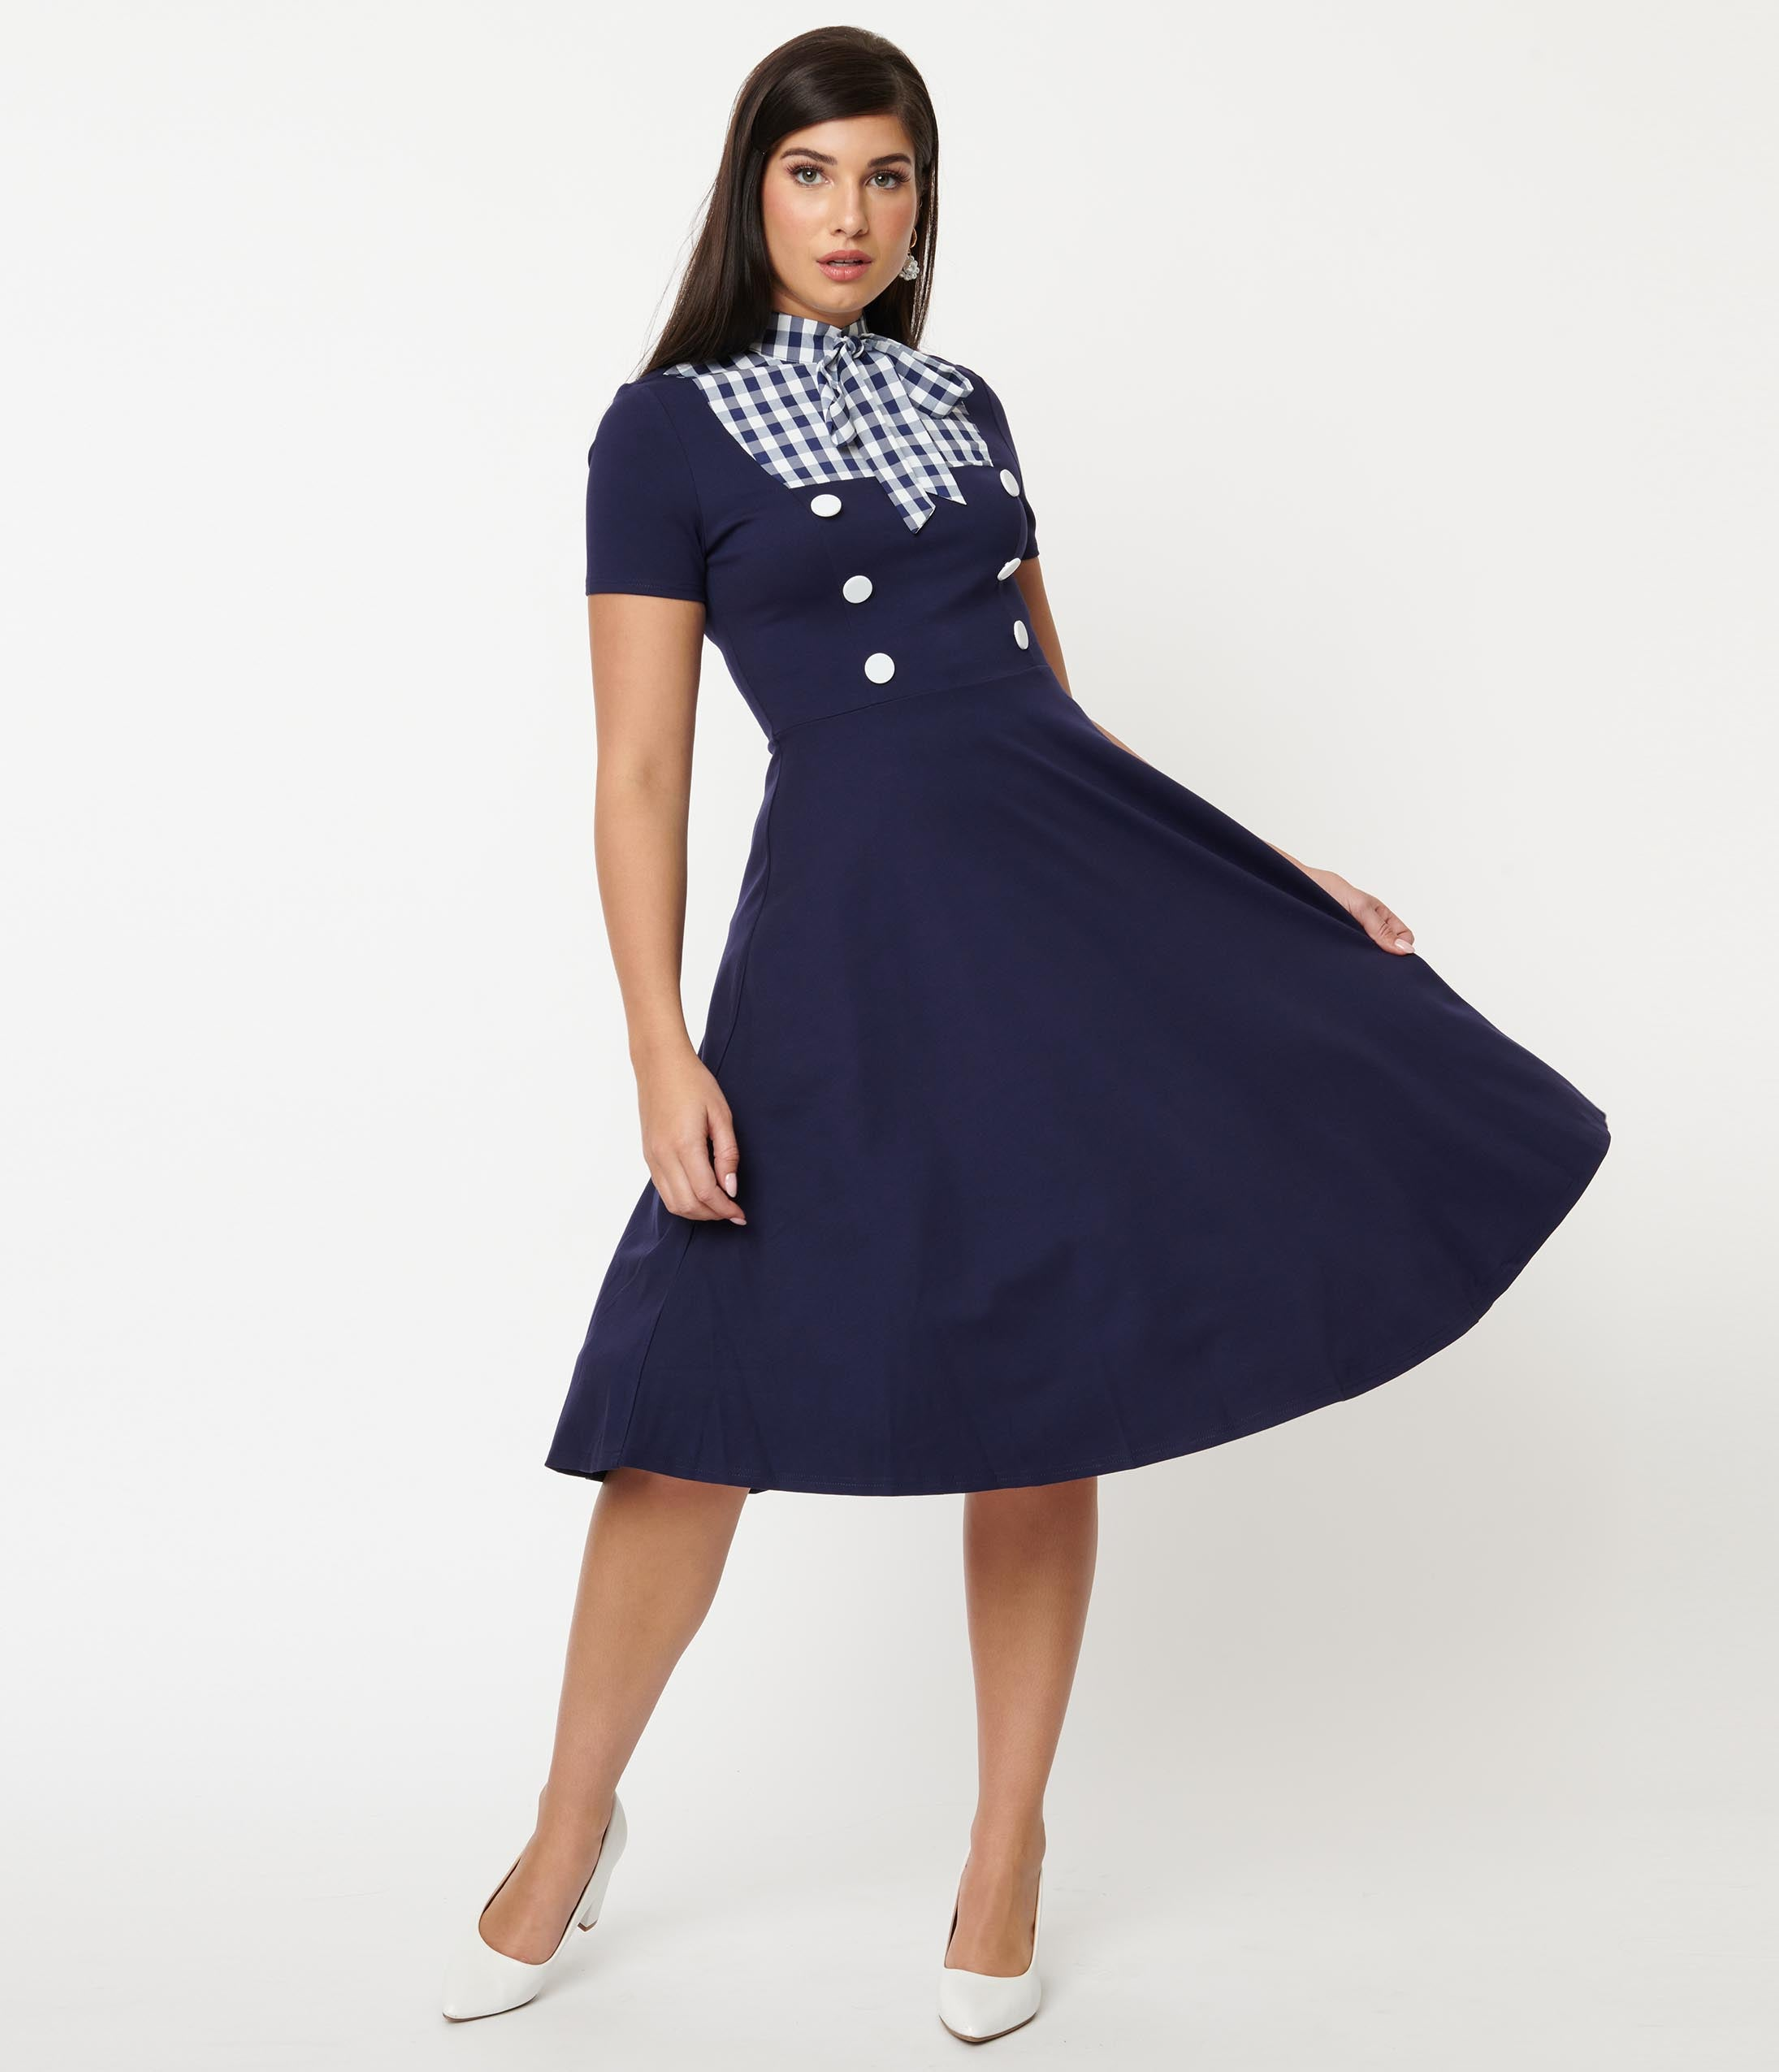 Pin Up Girl Costumes | Pin Up Costumes Magnolia Place Navy Blue  Gingham Yoke Swing Dress $88.00 AT vintagedancer.com